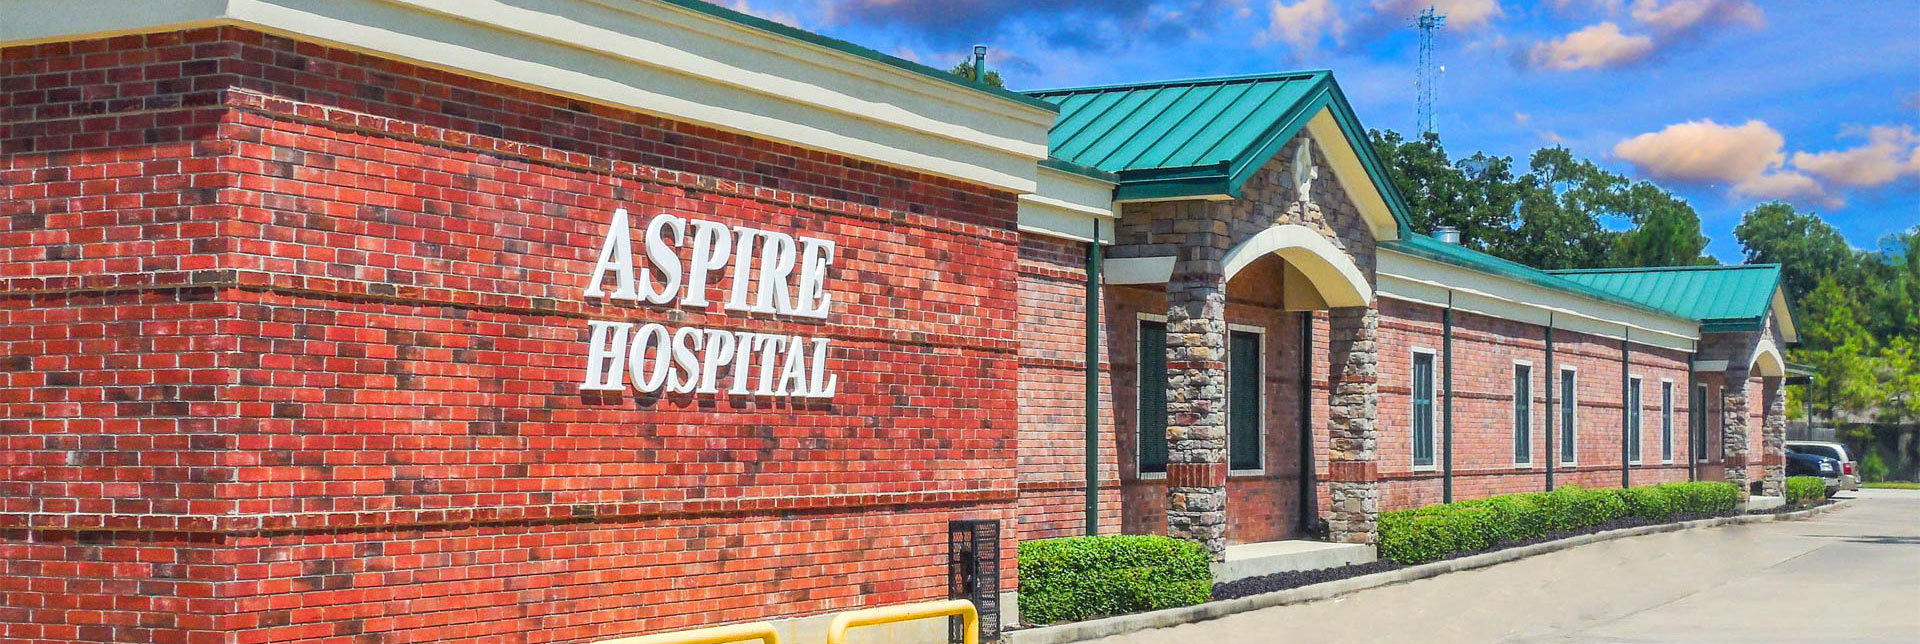 Welcome To Aspire Hospital In Conroe Texas